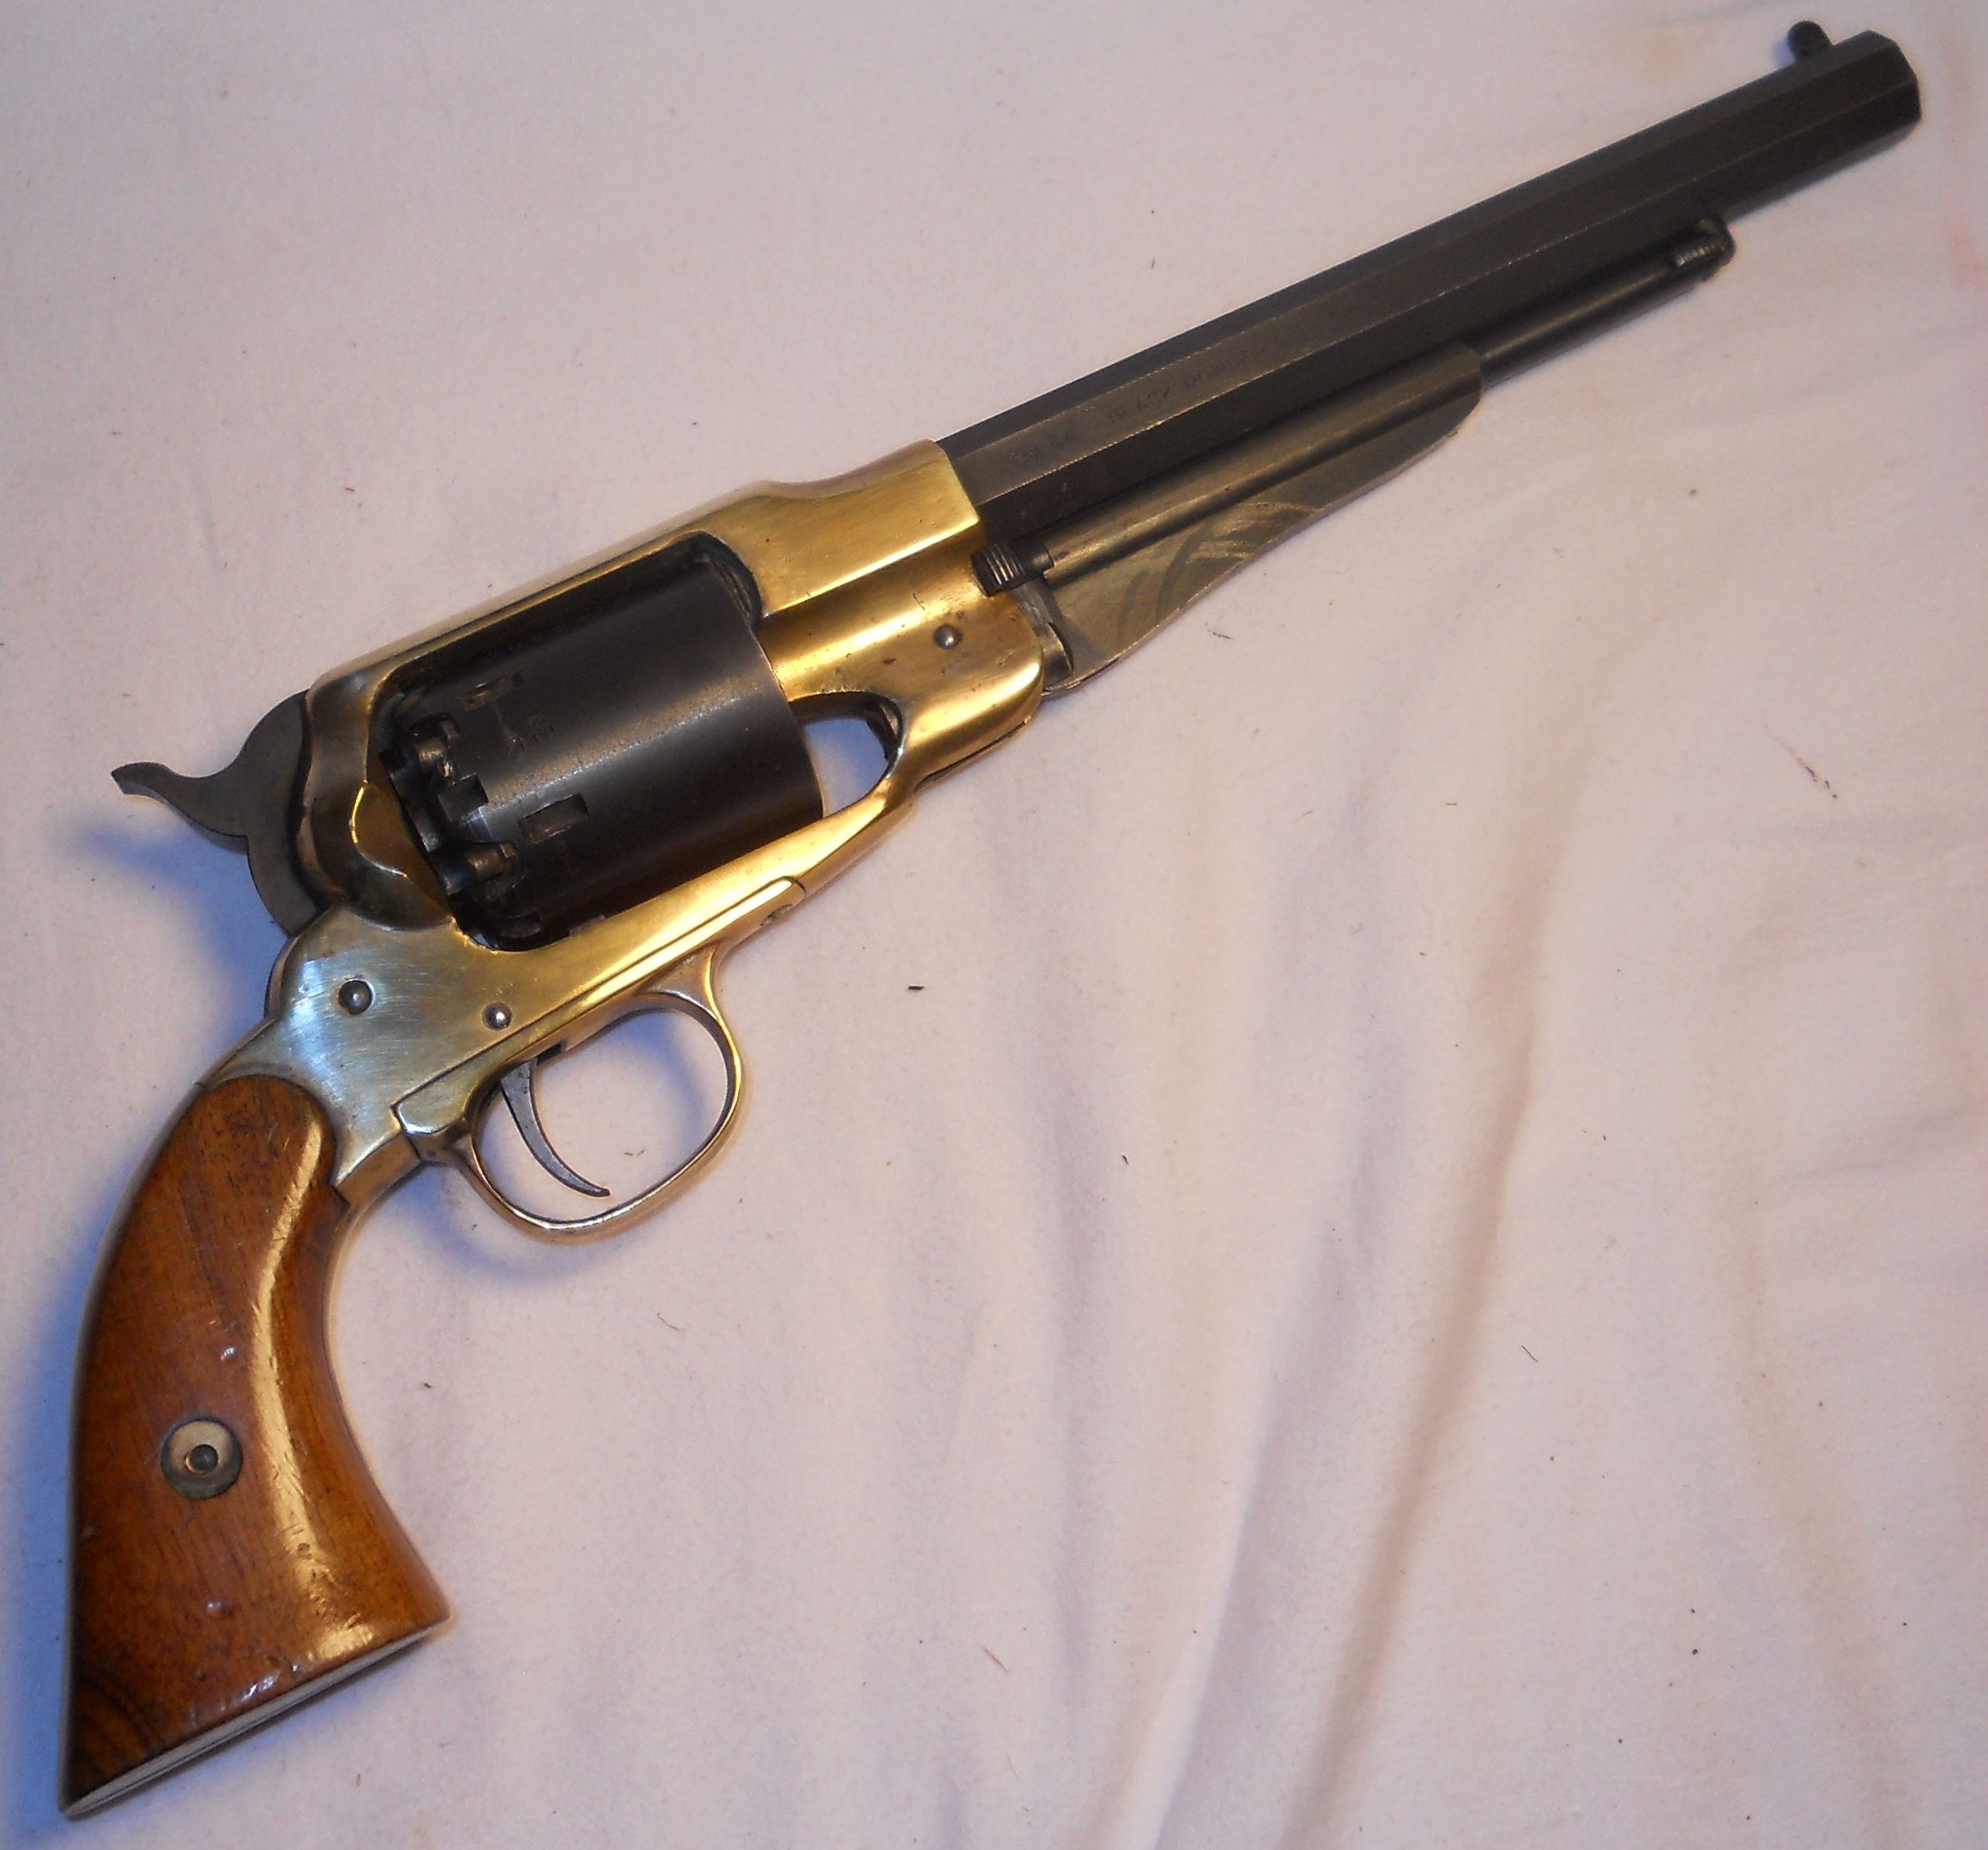 1858 army 44 caliber brass frame black powder pistol i had one and